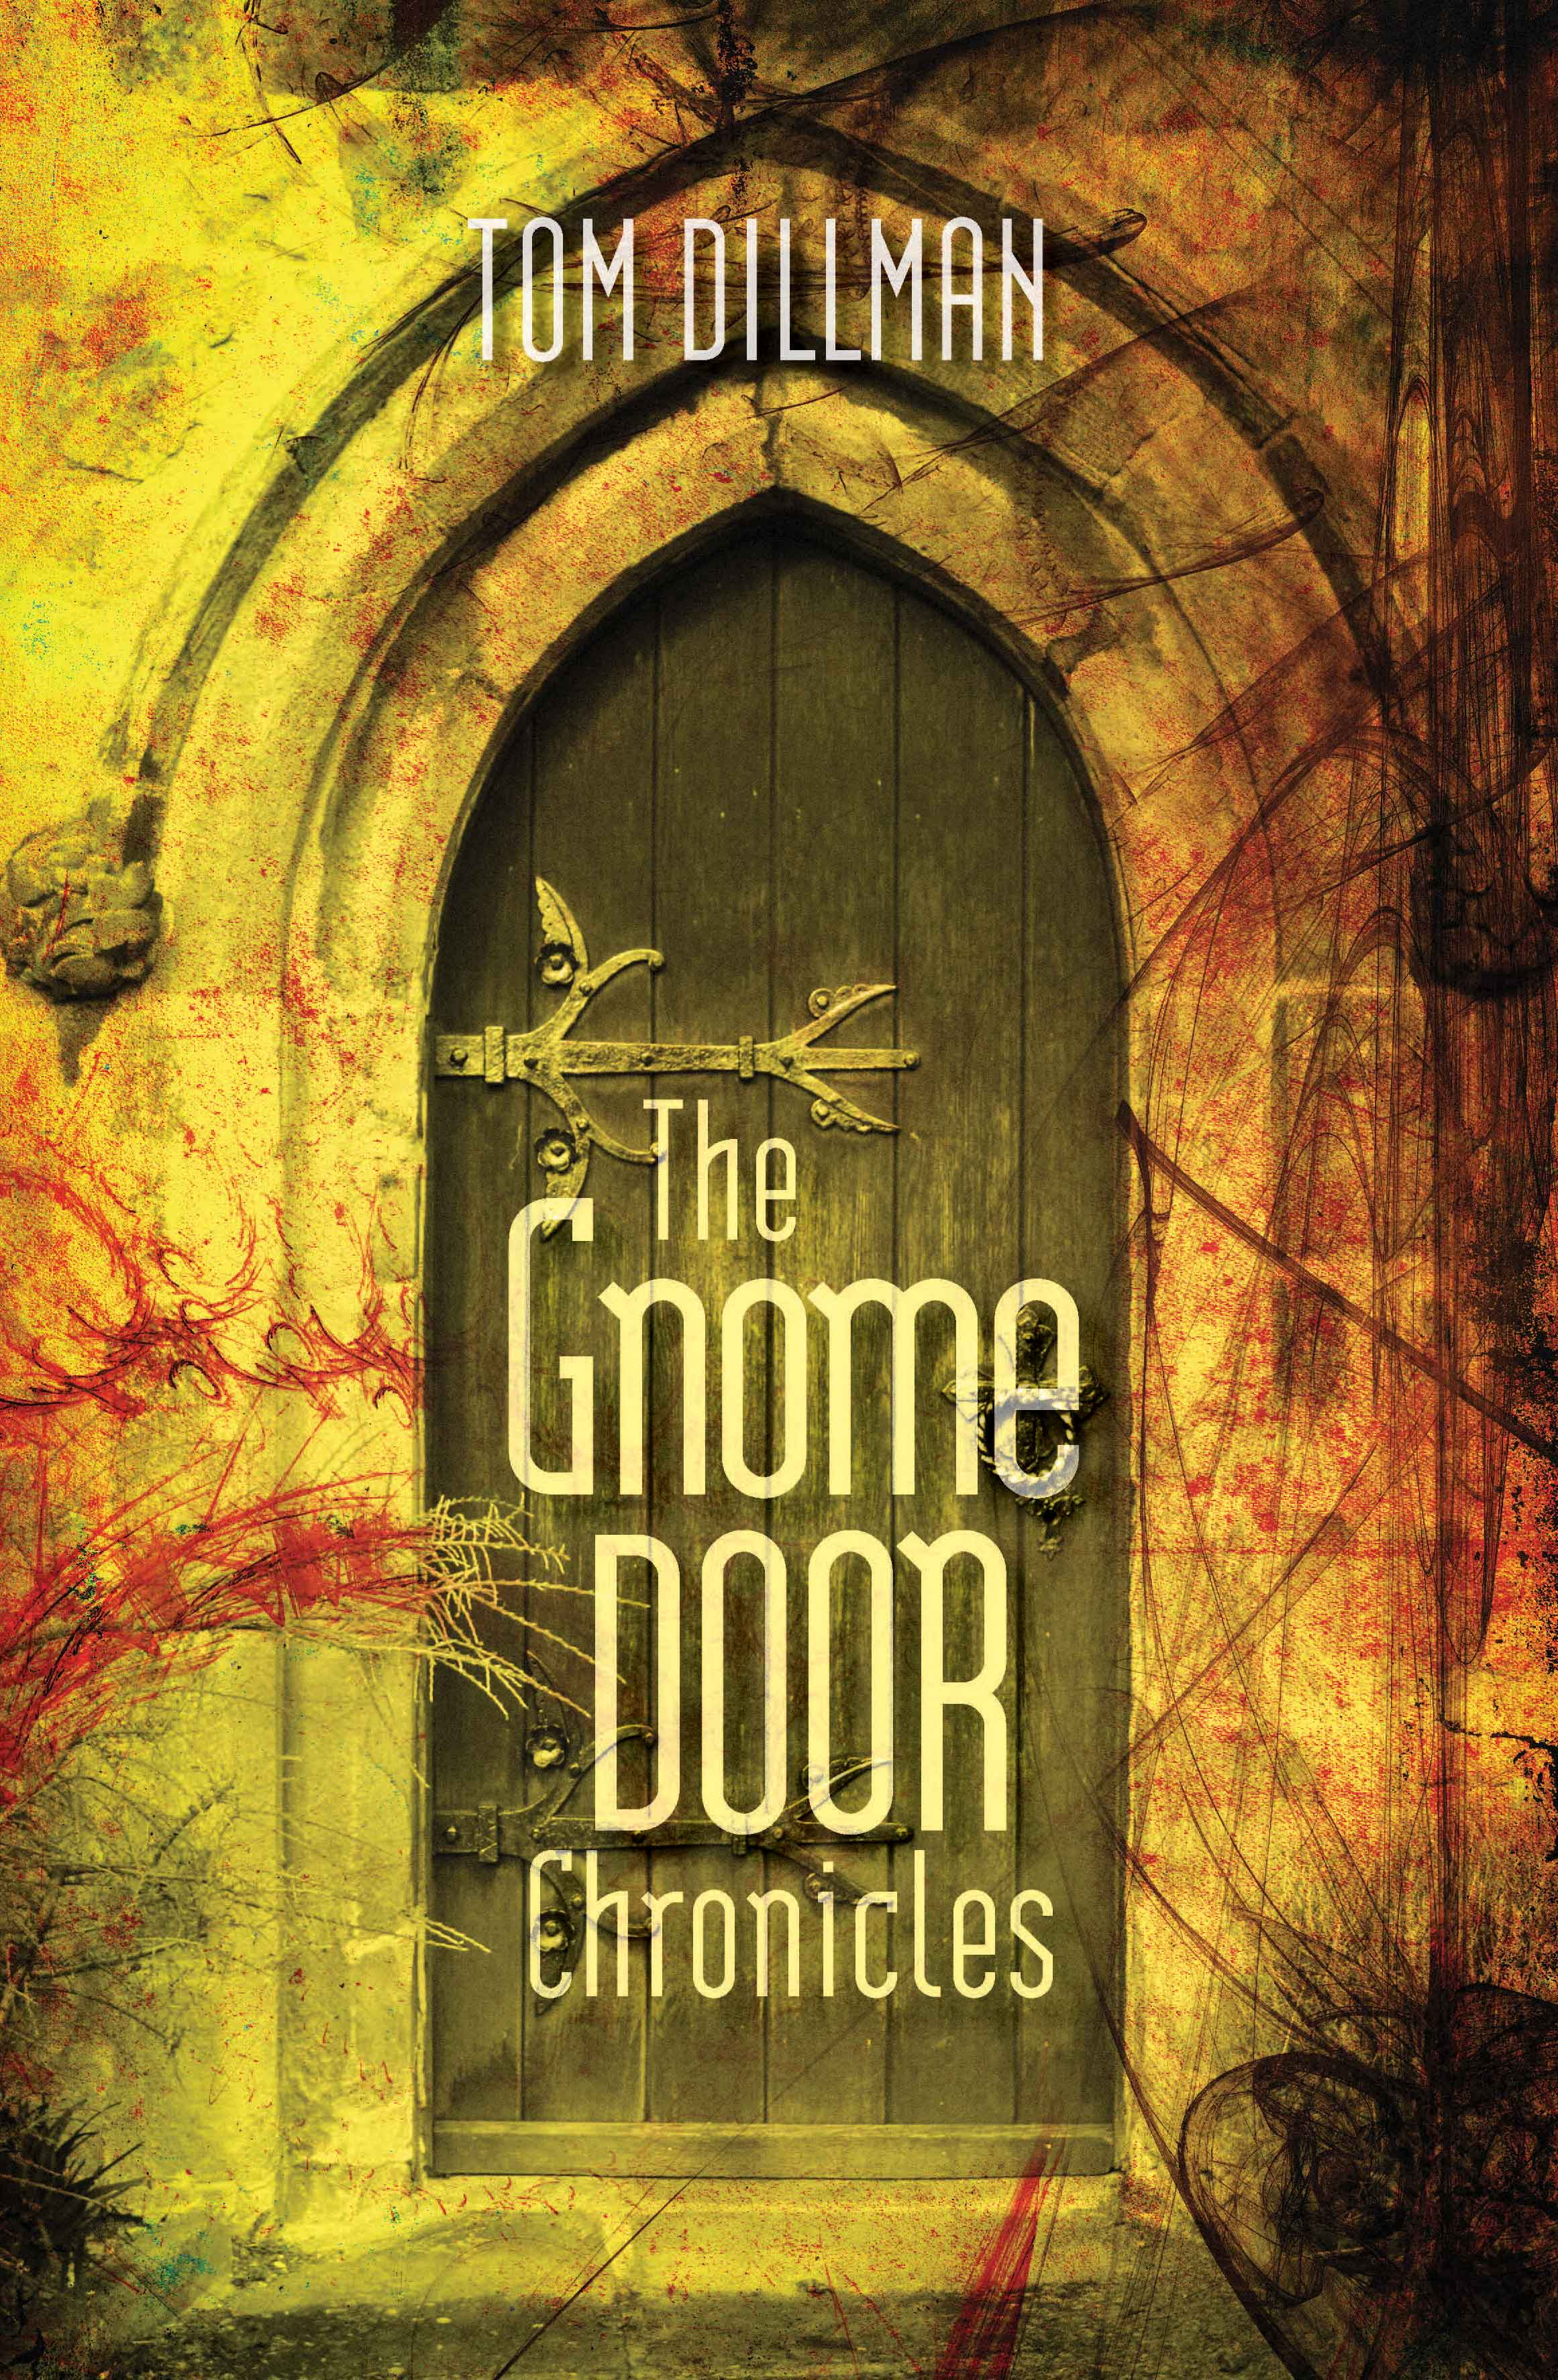 Cover of book The Gnome Door Chronicles.